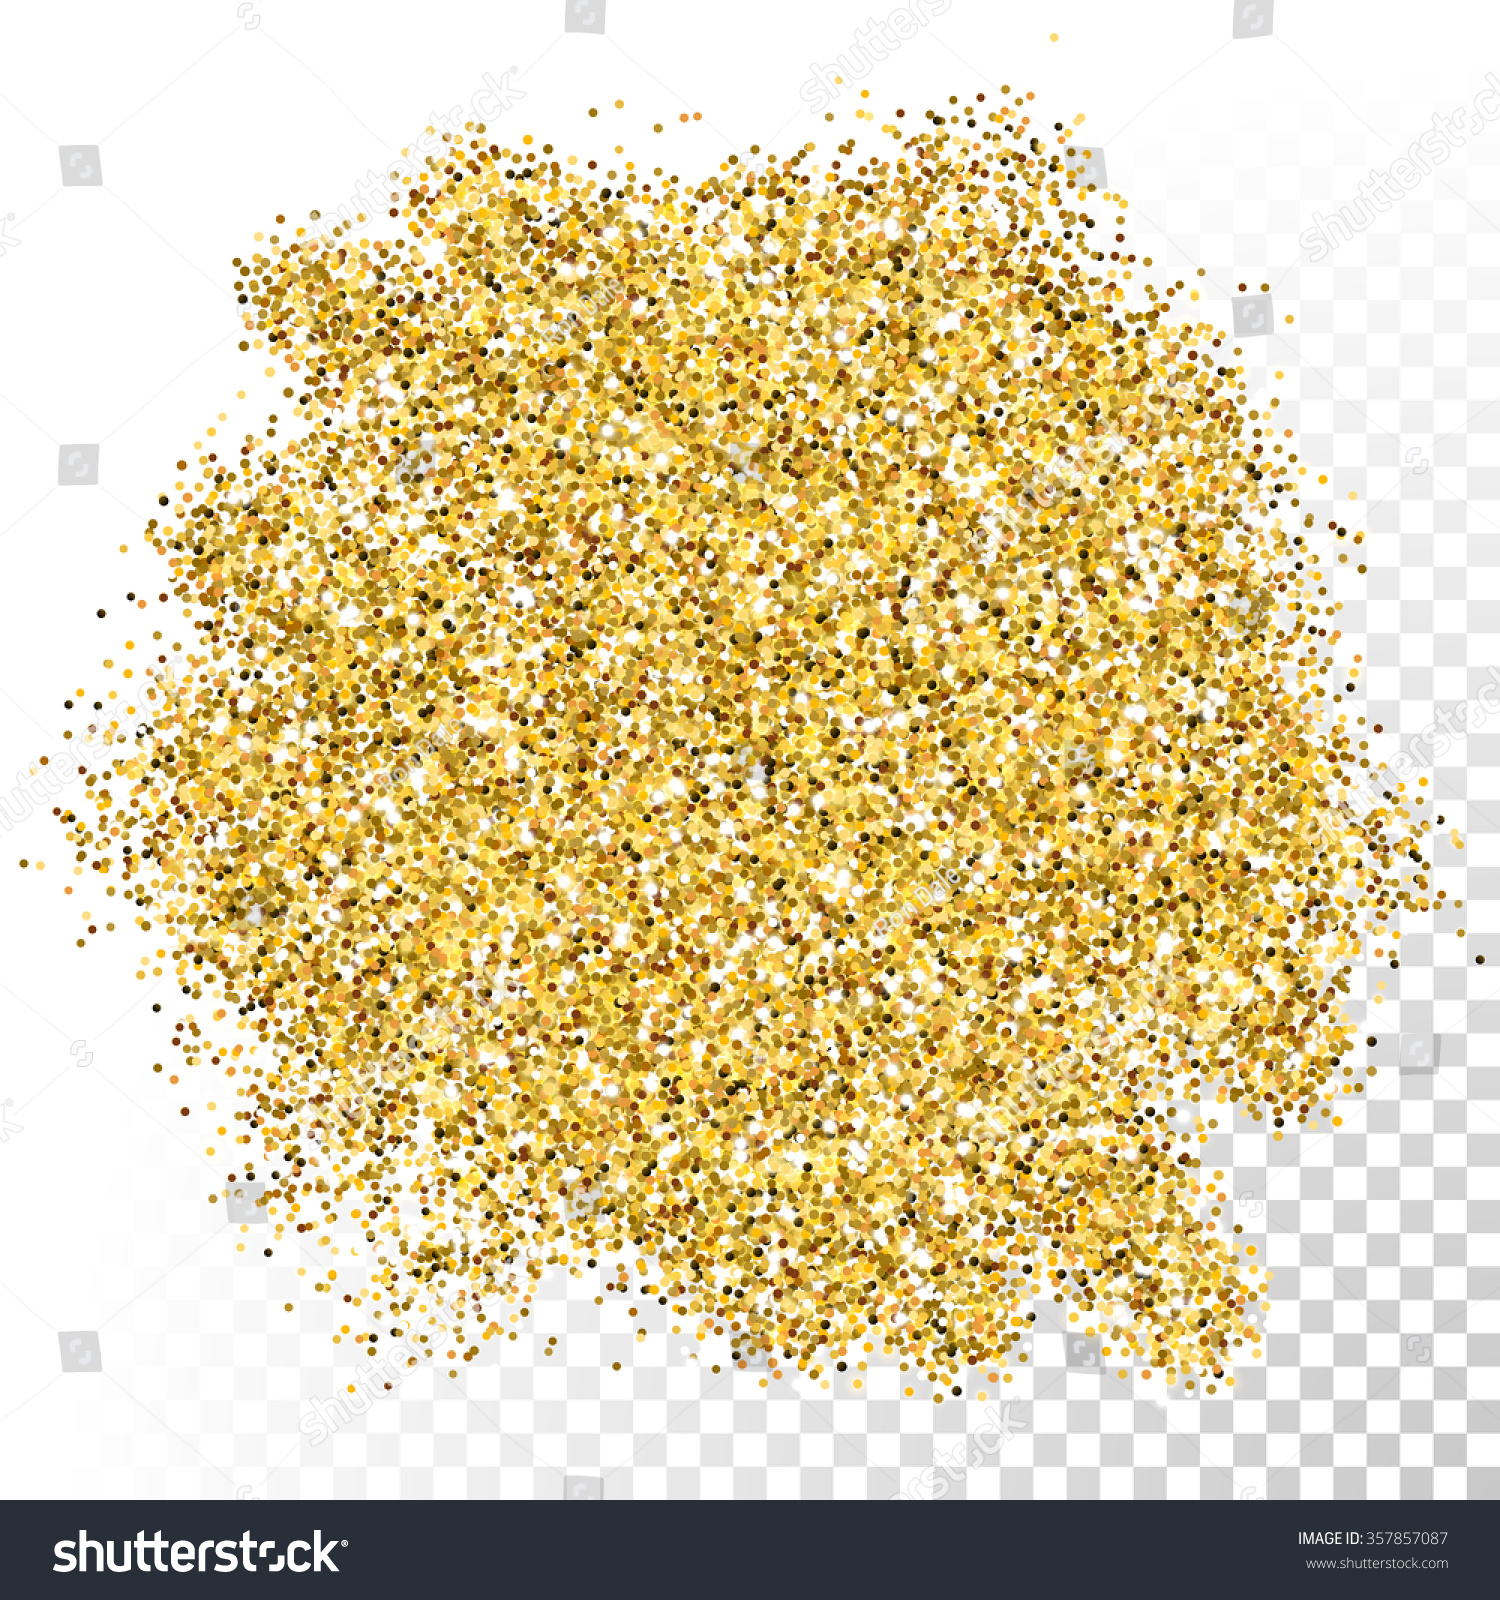 Gold glitter bright vector transparent background golden sparkles - Vector Gold Glitter Texture Gold Sparkles On Transparent Background